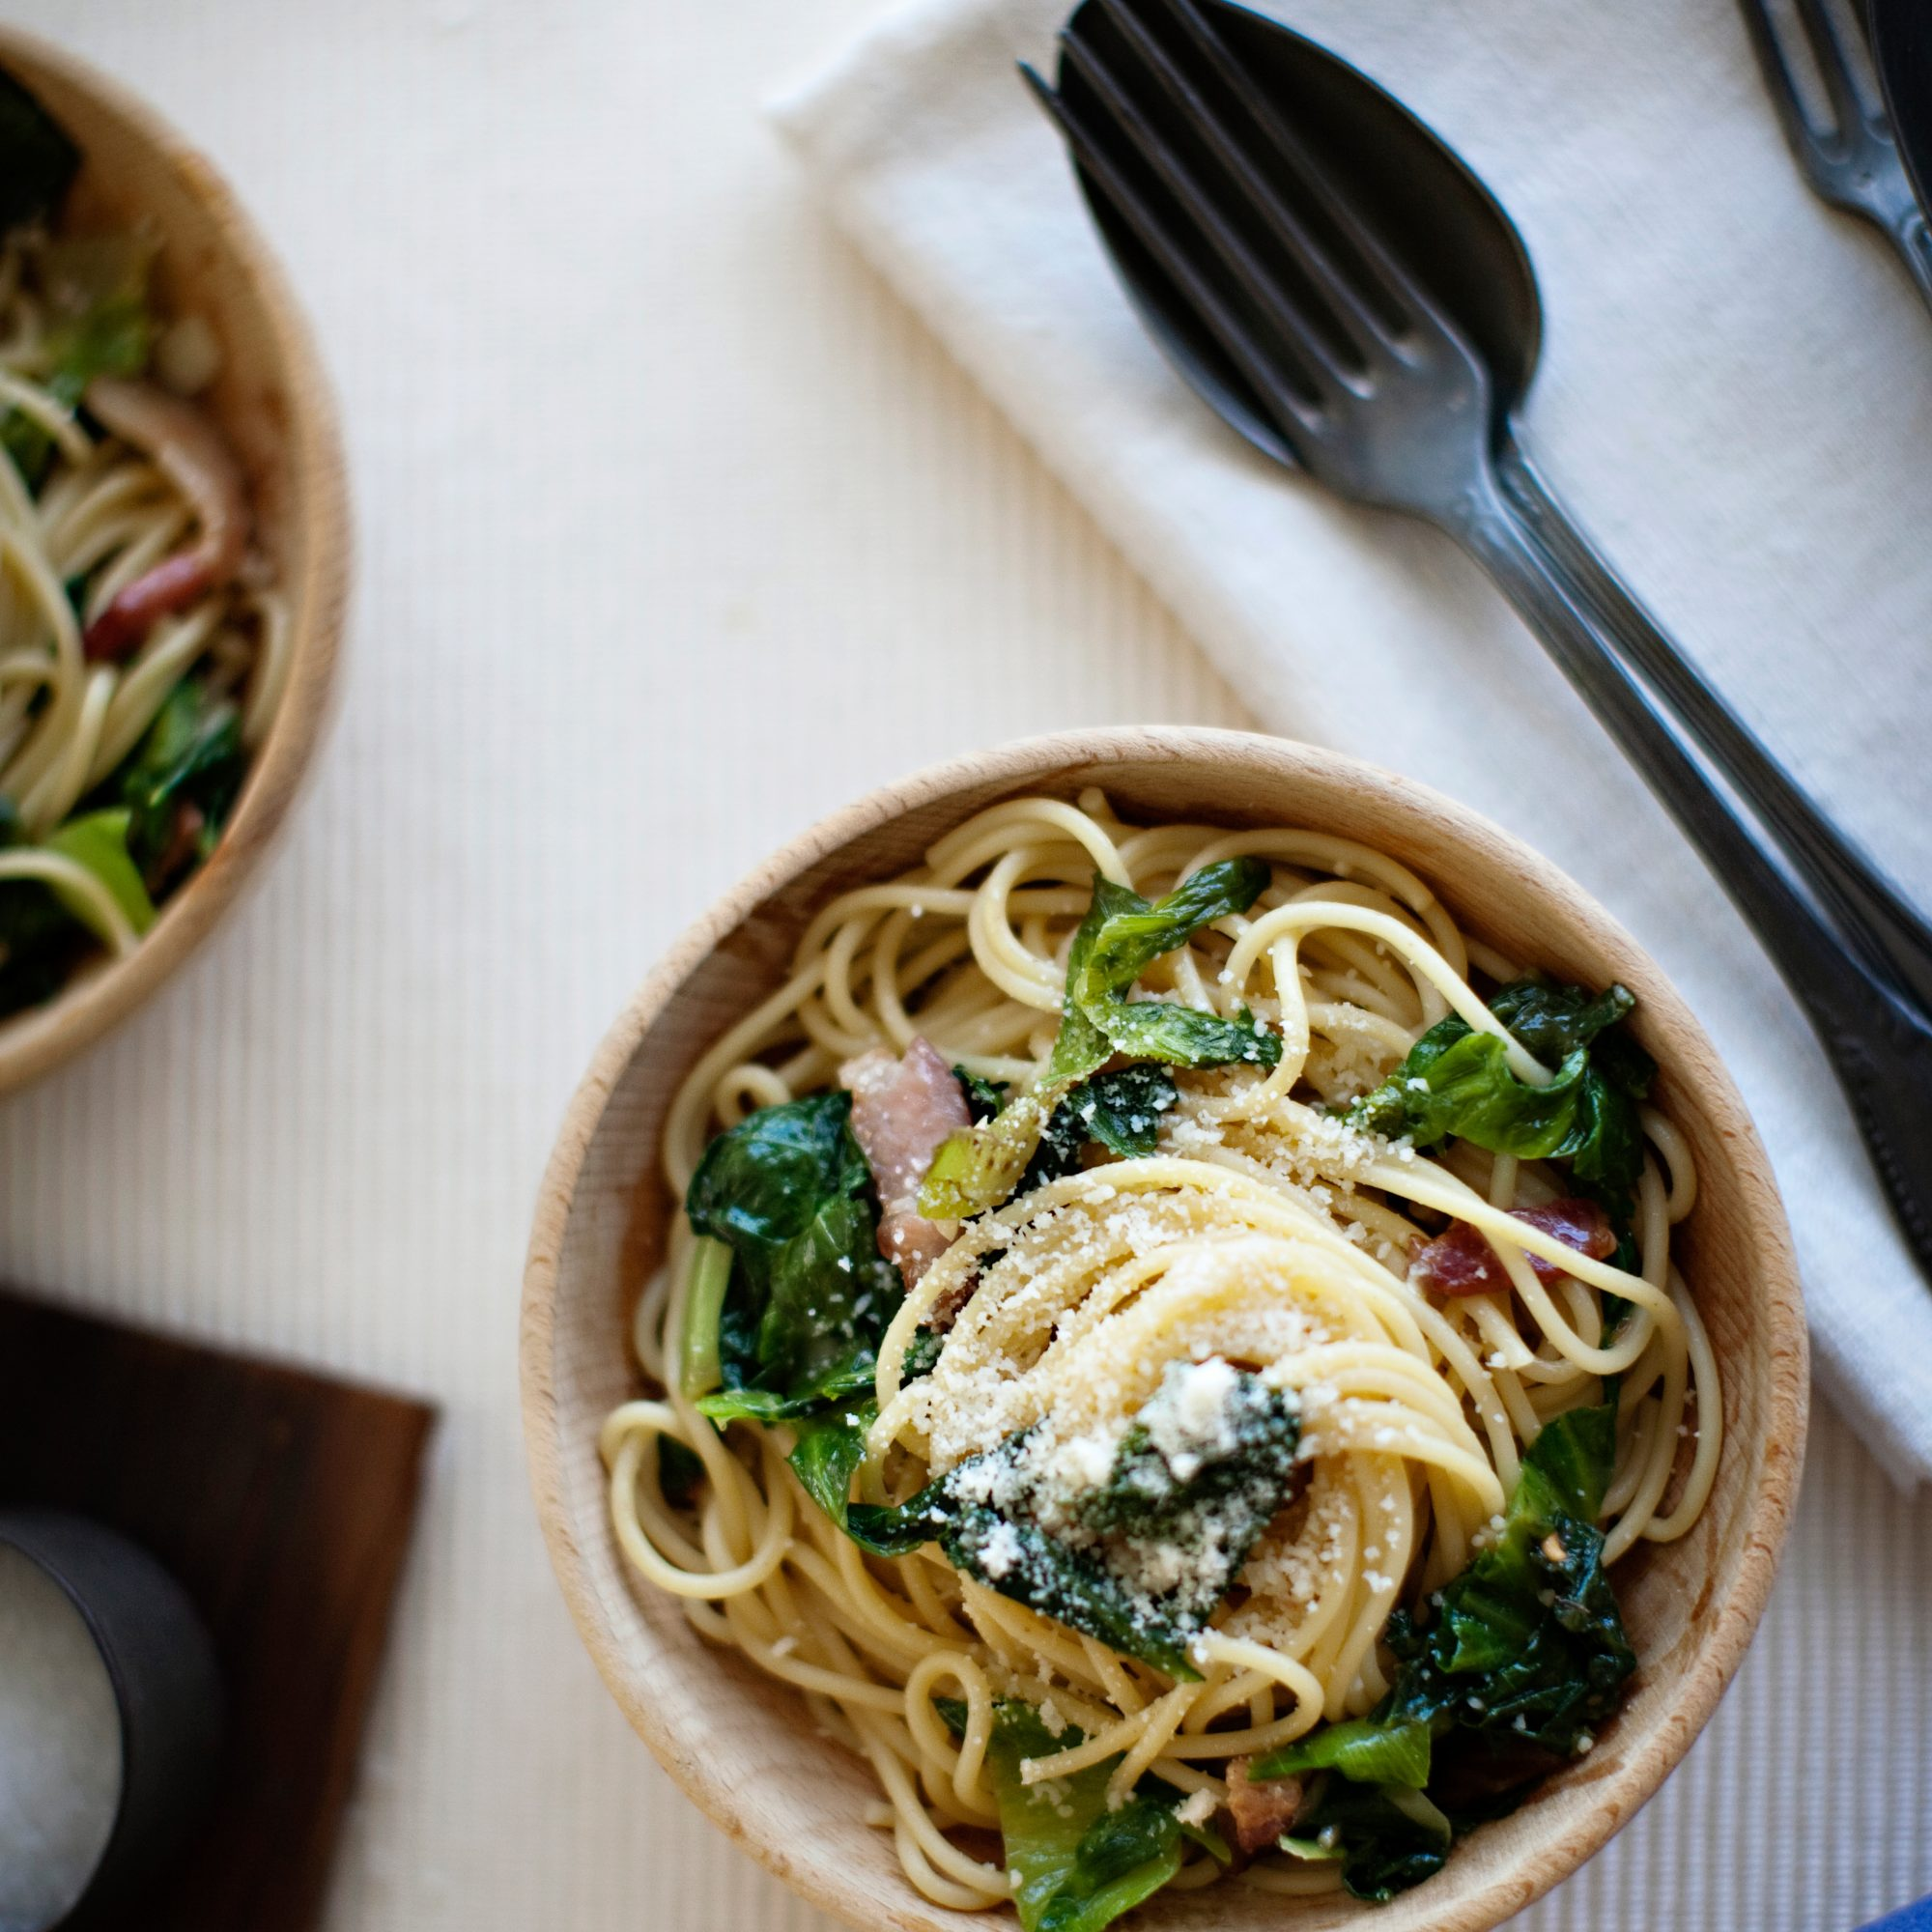 HD-201204-r-qfs-spaghetti-escarole-bacon.jpg